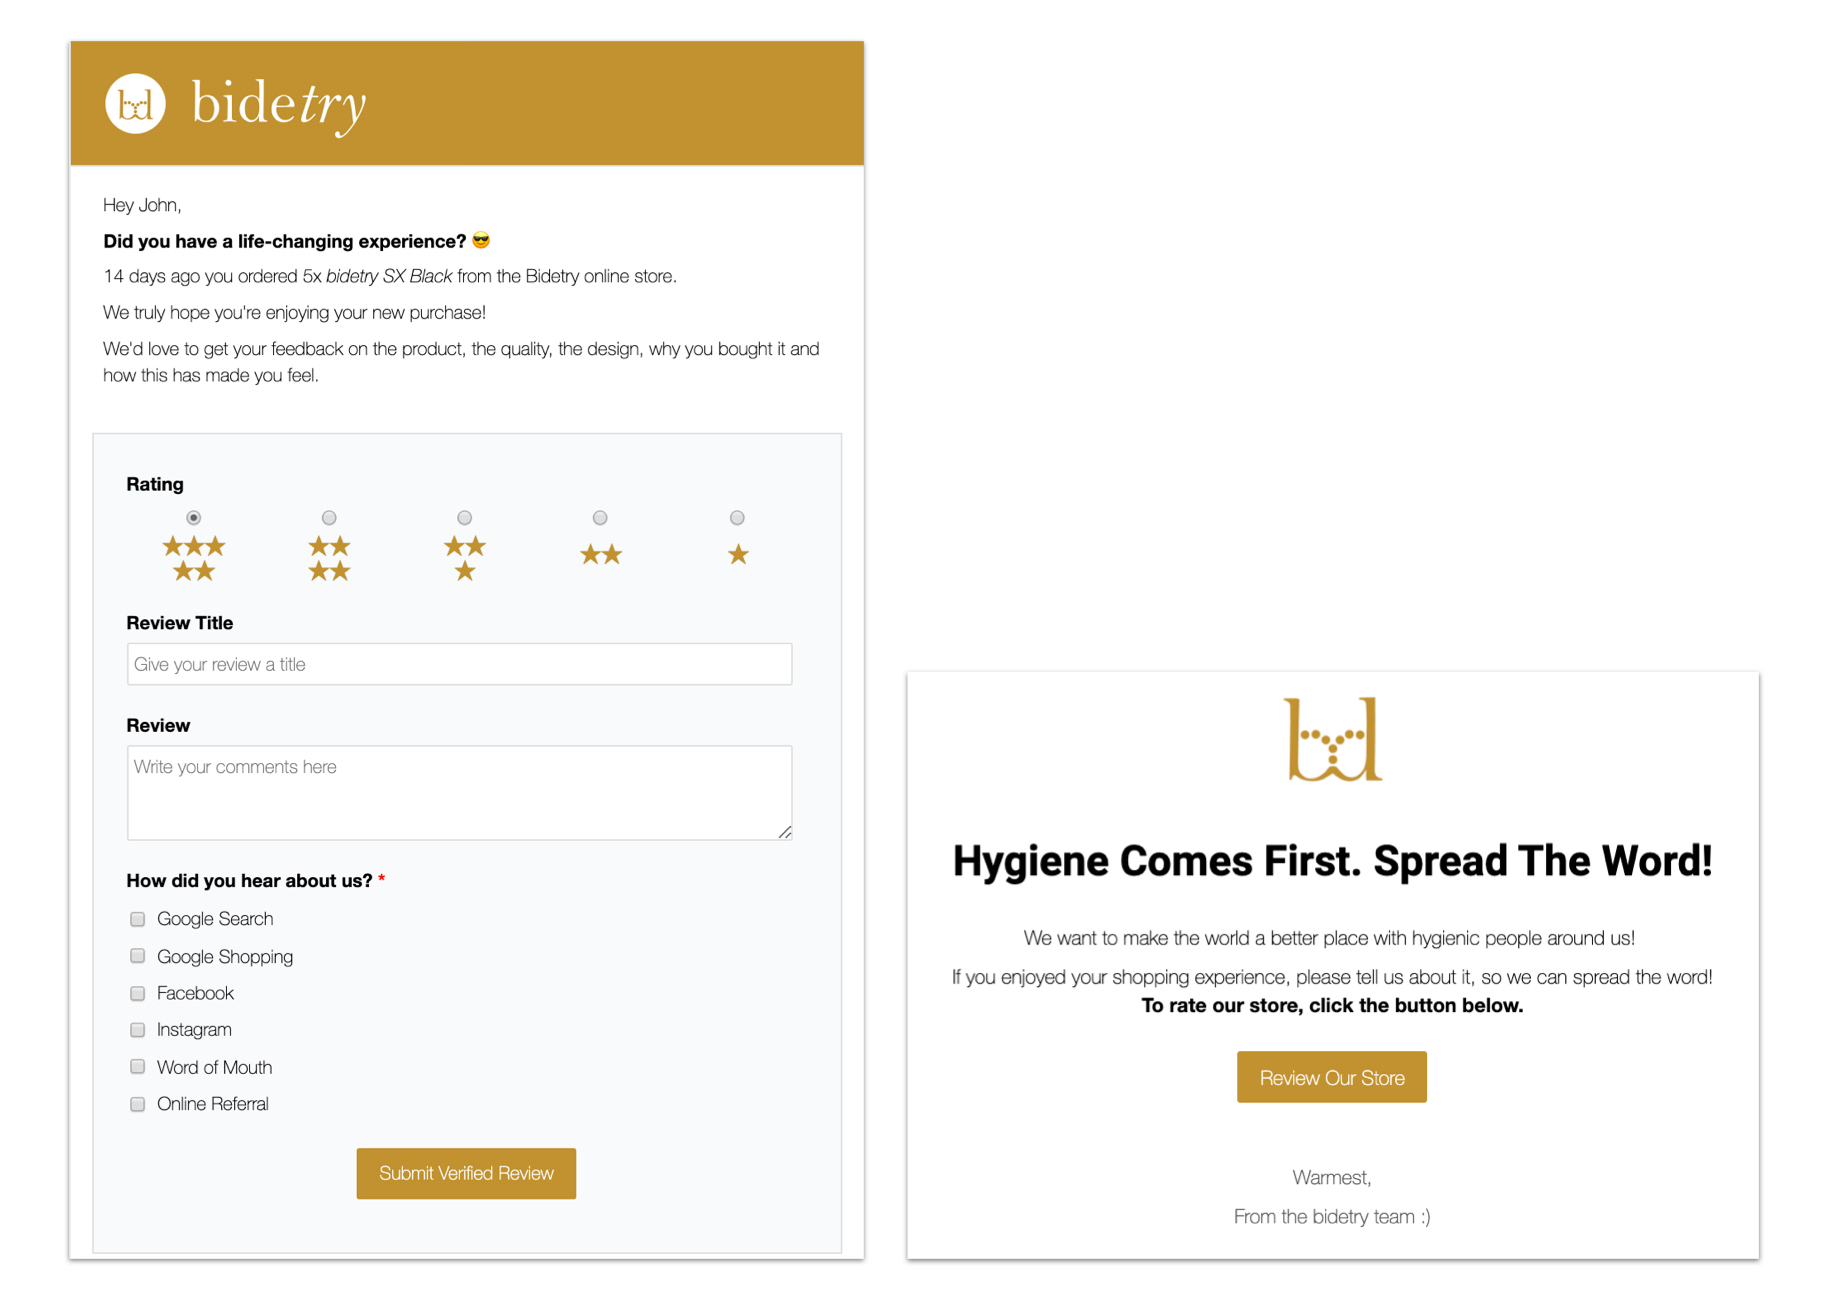 judge.me email templates tips